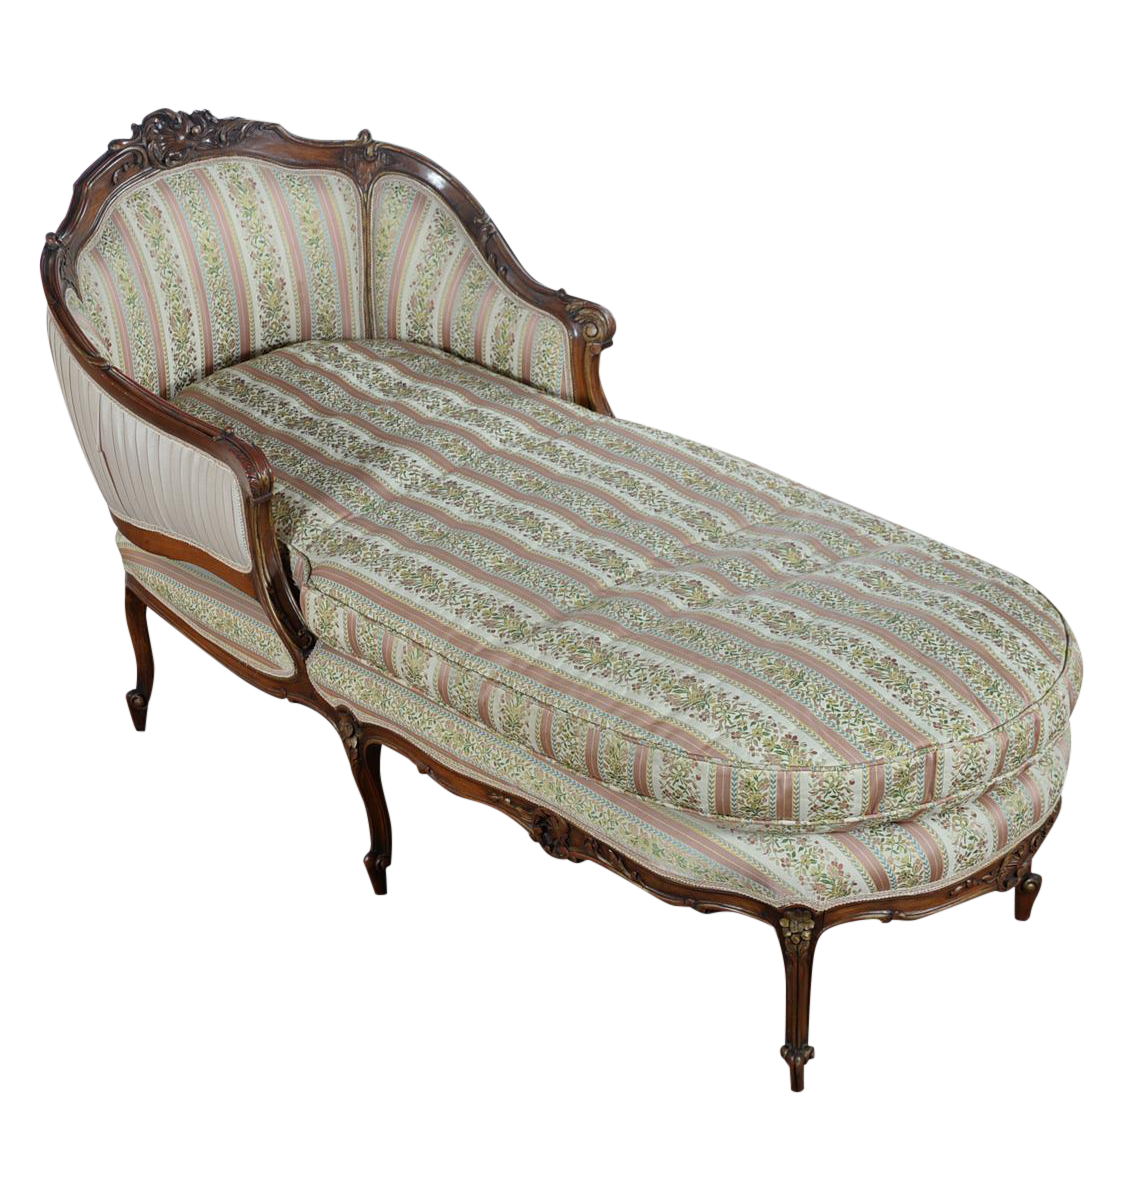 empire directoire french century chaise sofas inessa longue style